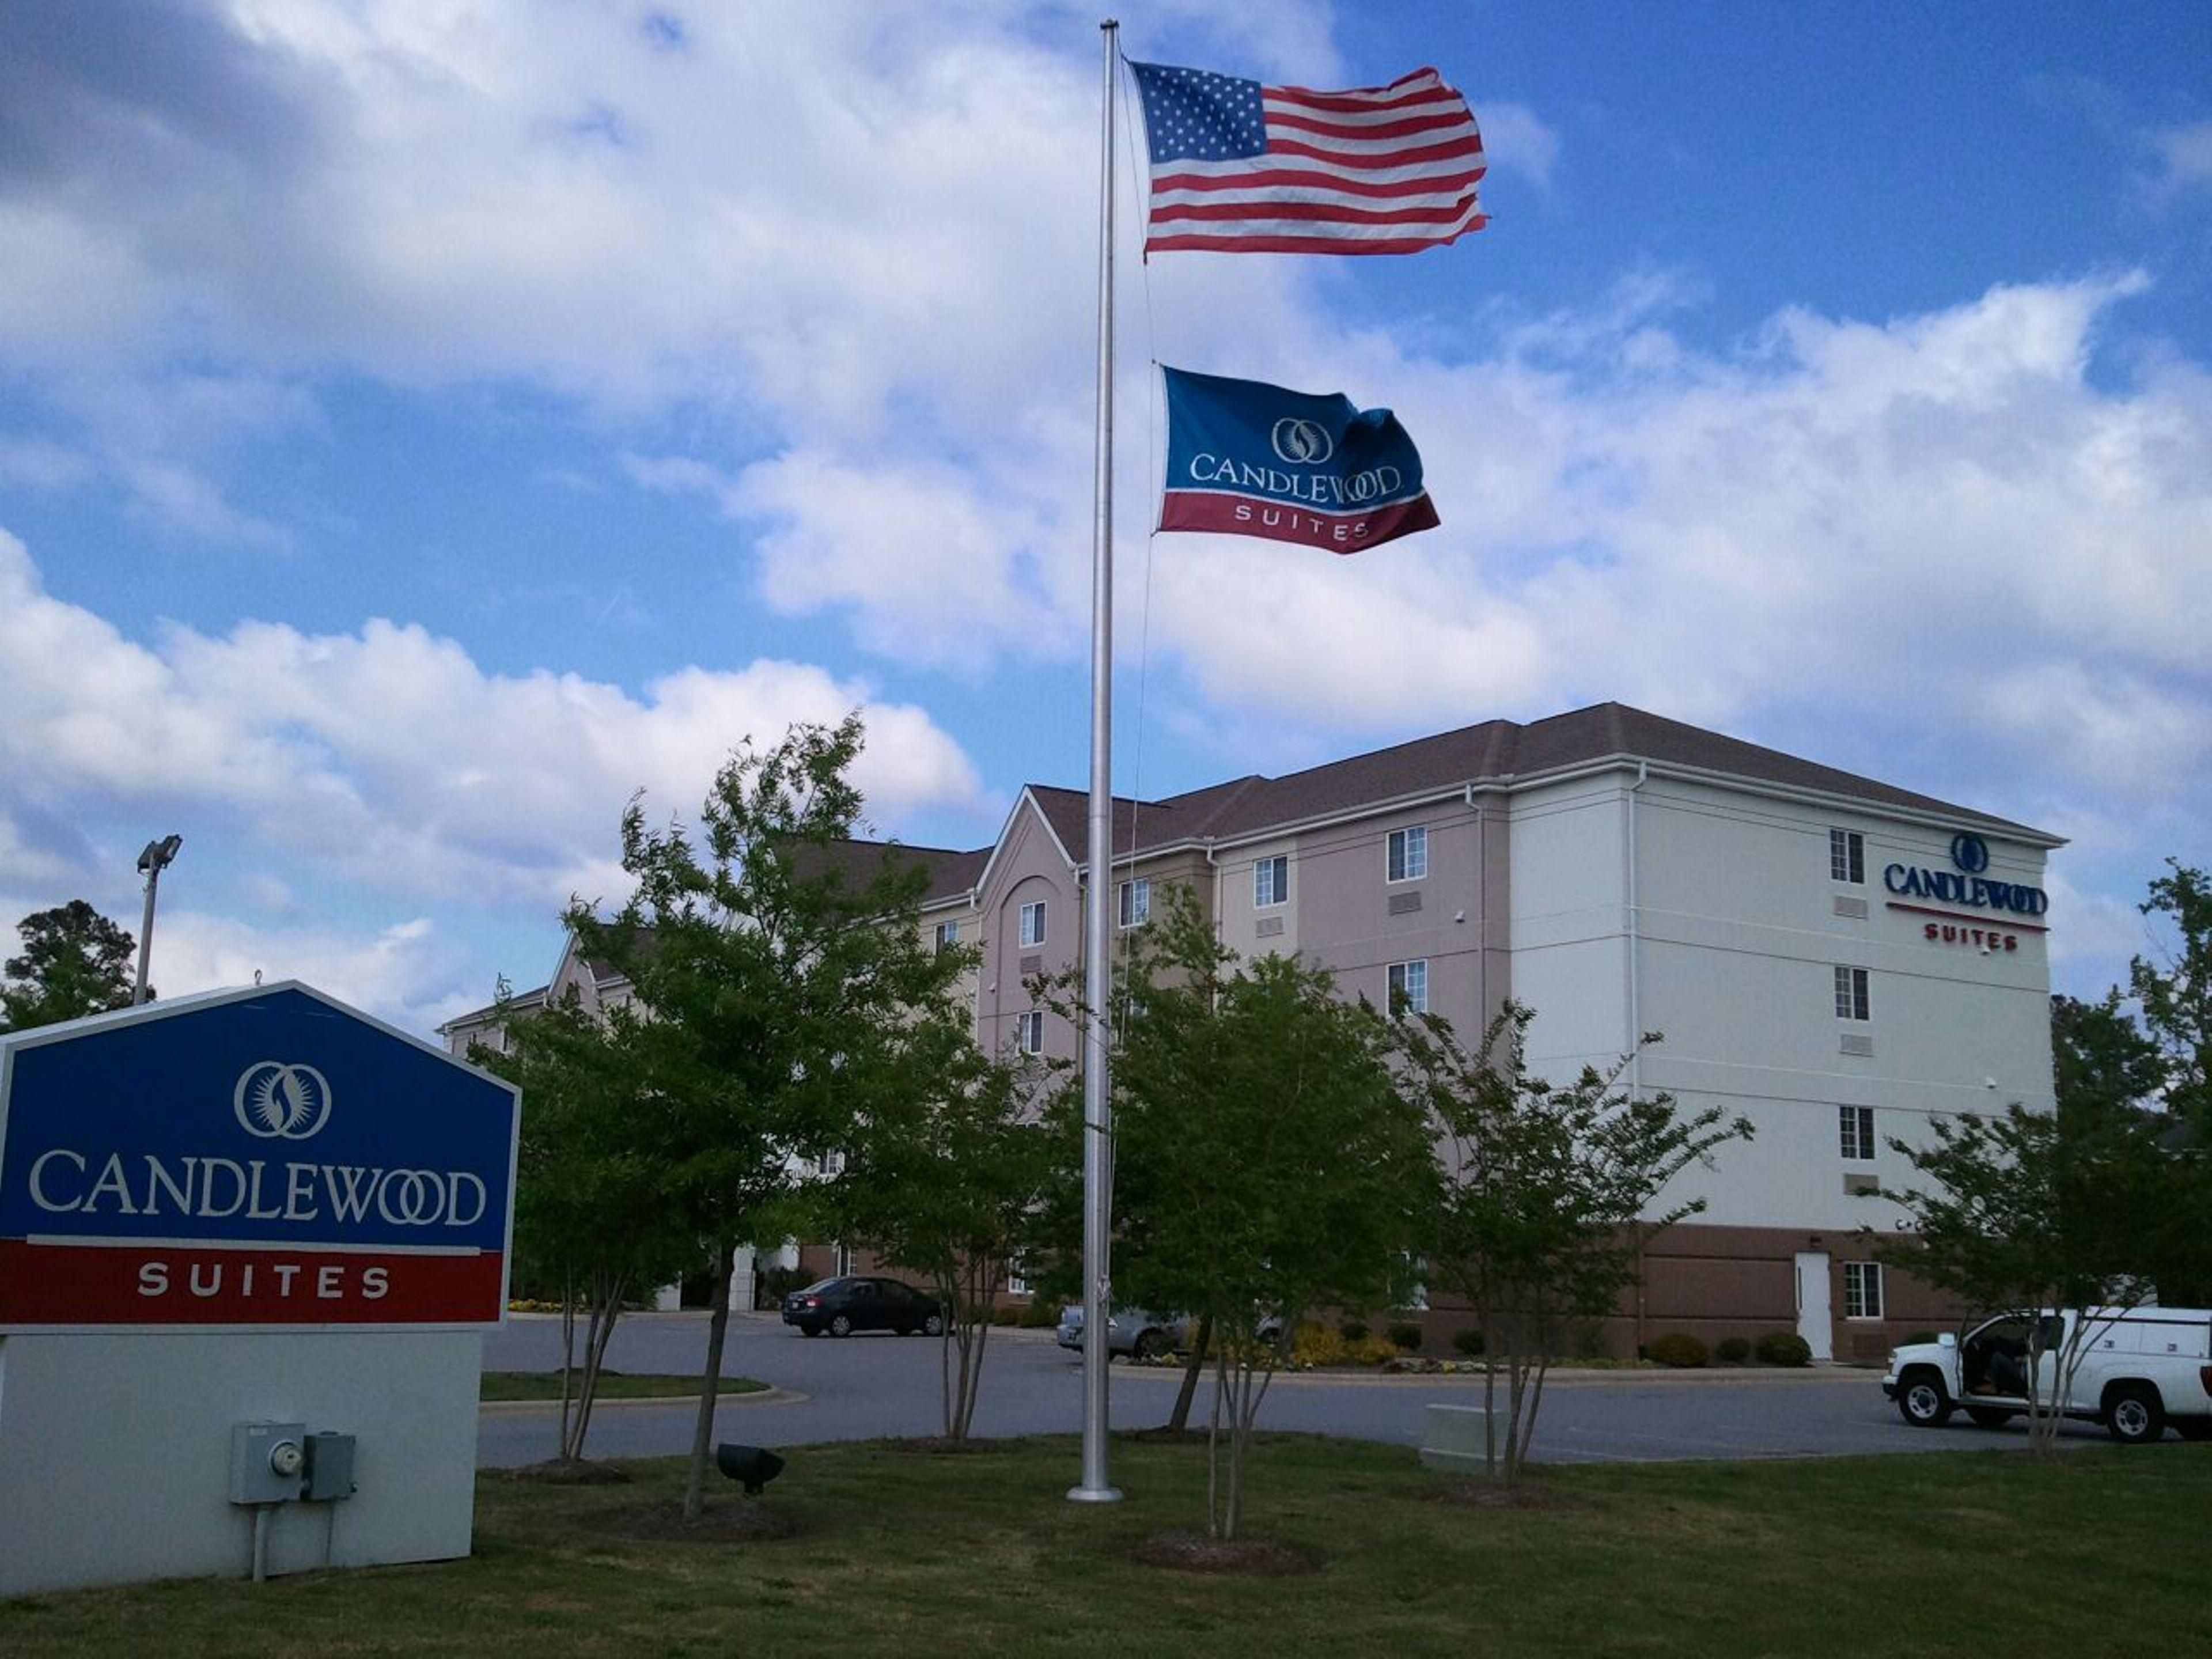 Candlewood Suites Greenville NC